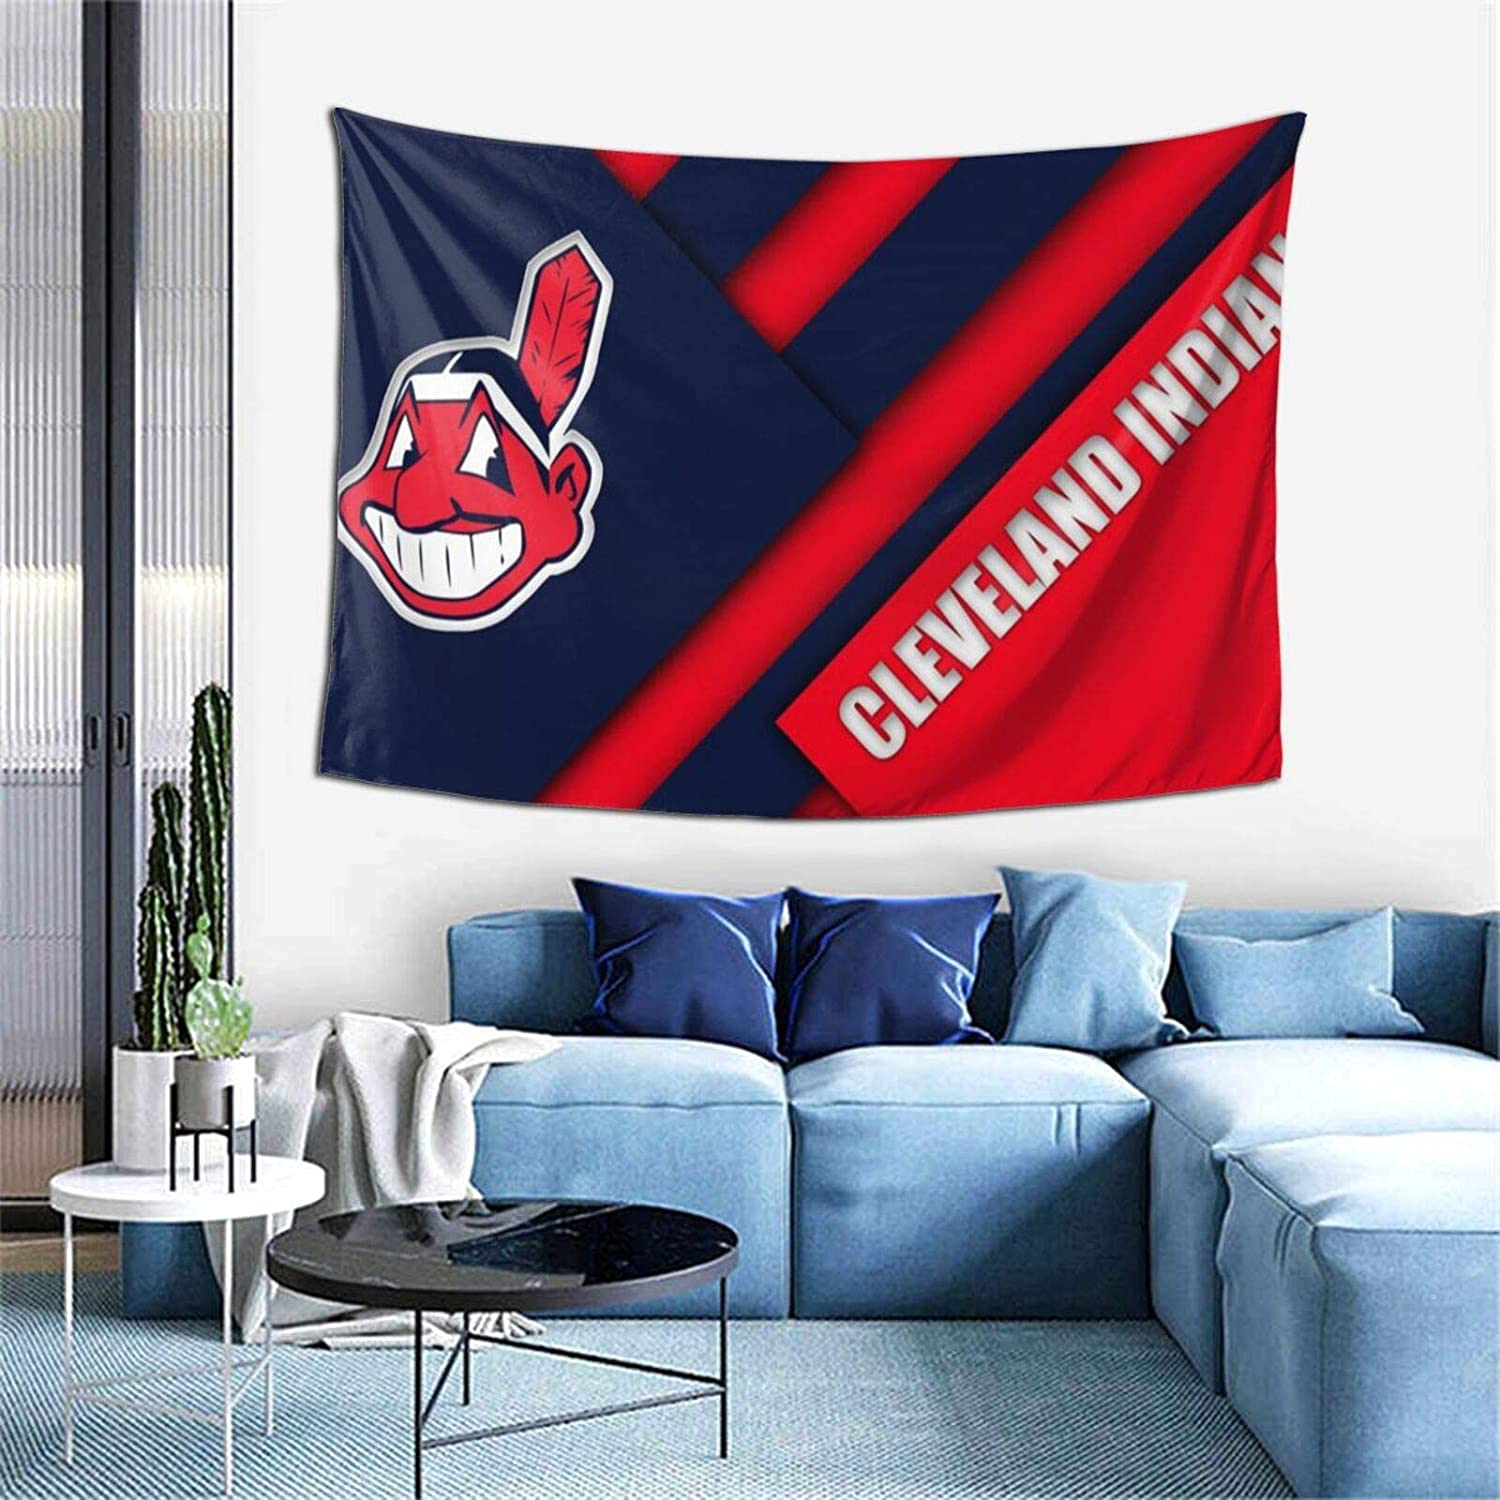 Fremont Die Cleveland Indians Tapestry, Dorm Decor for Living Room Bedroom Wall Art Major League Baseball Artwork Home Decor 40x60 Inches